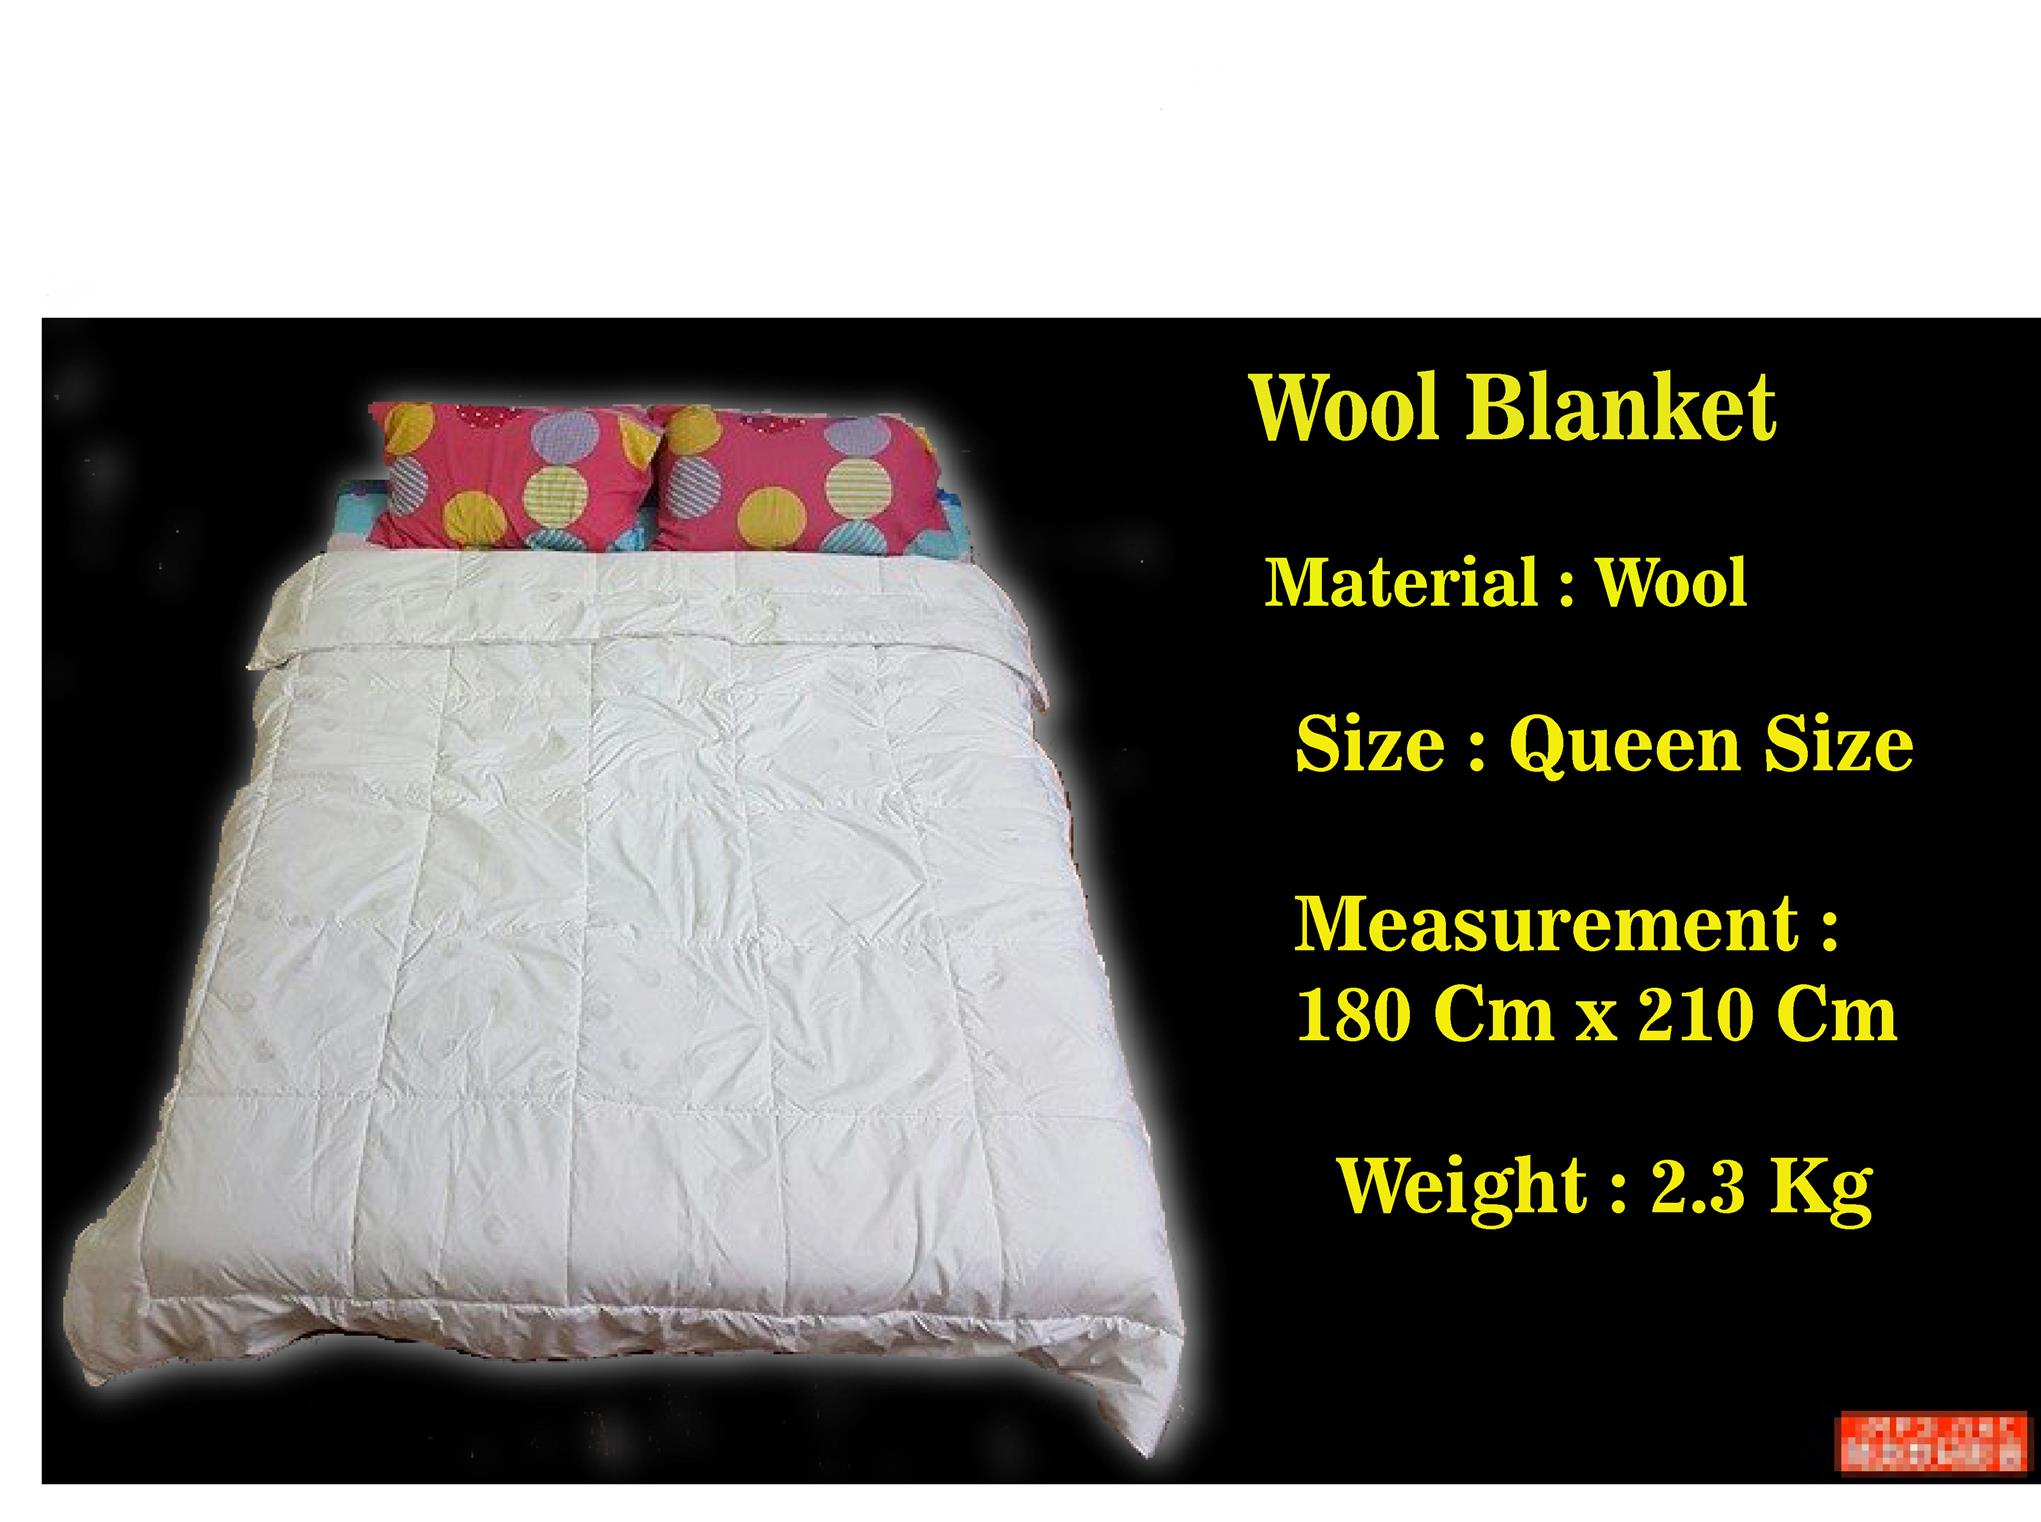 Queen Size Wool Blanket